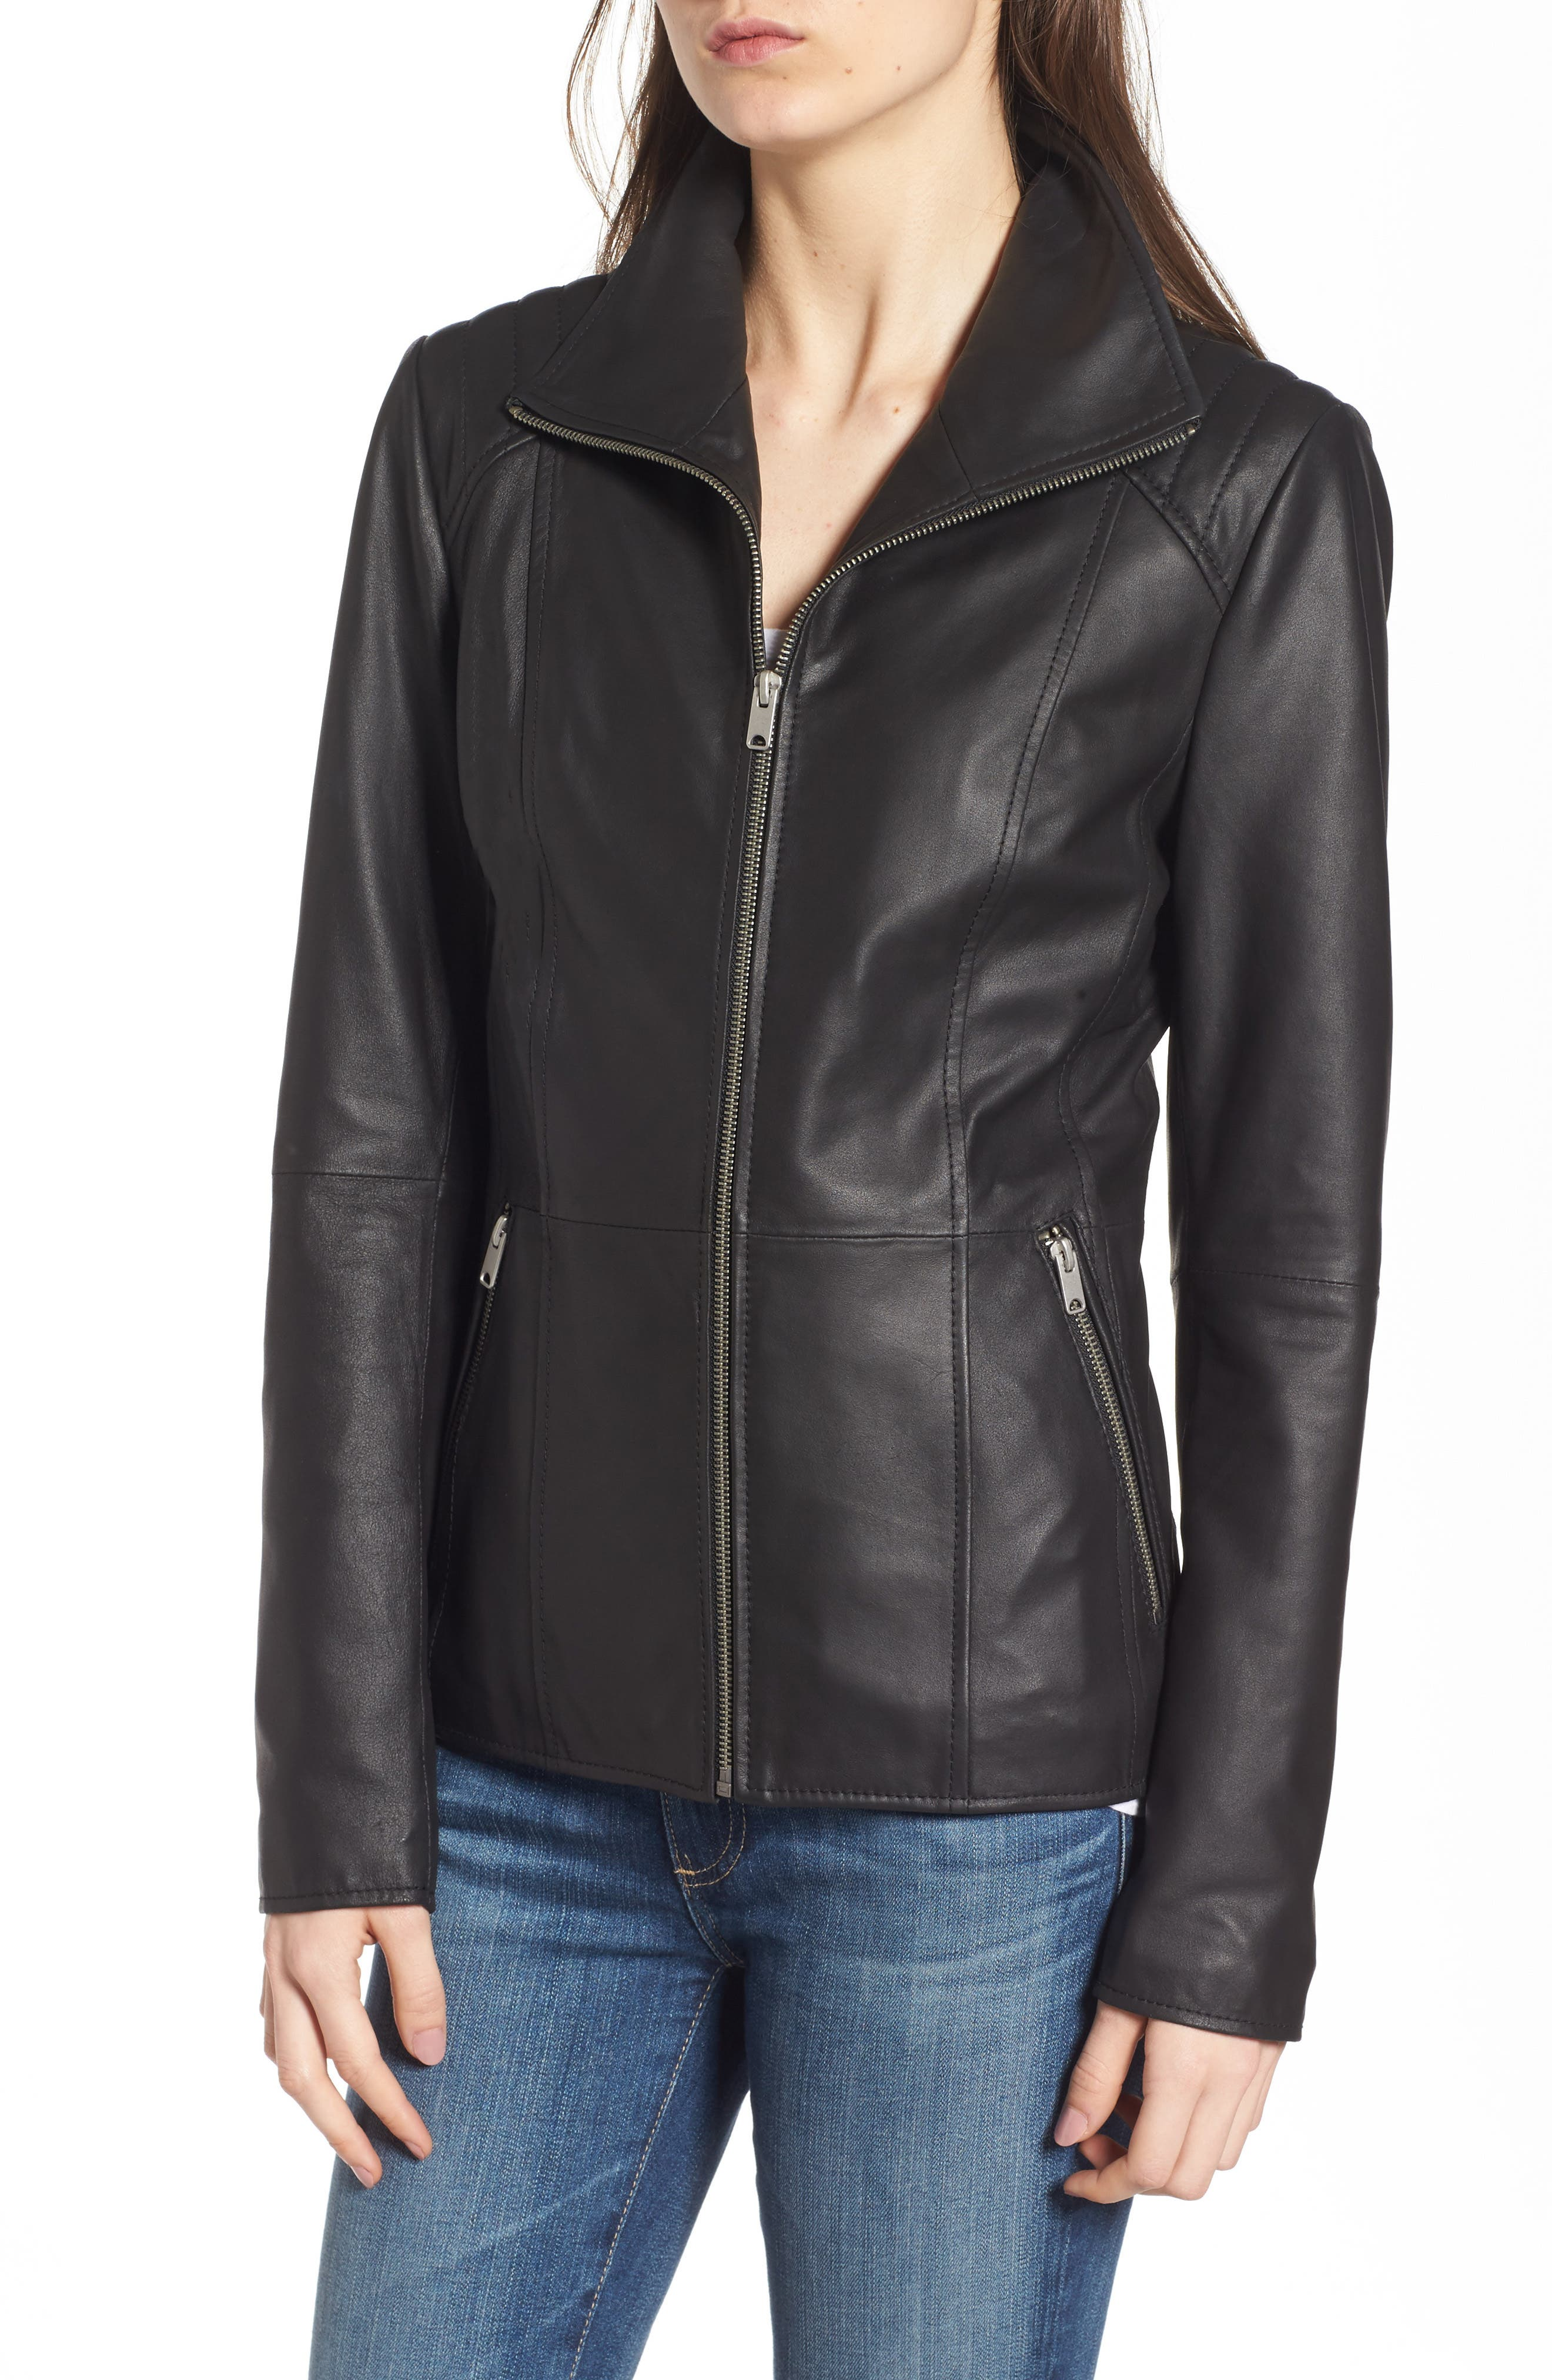 Fabian Feather Leather Jacket,                             Alternate thumbnail 4, color,                             Black